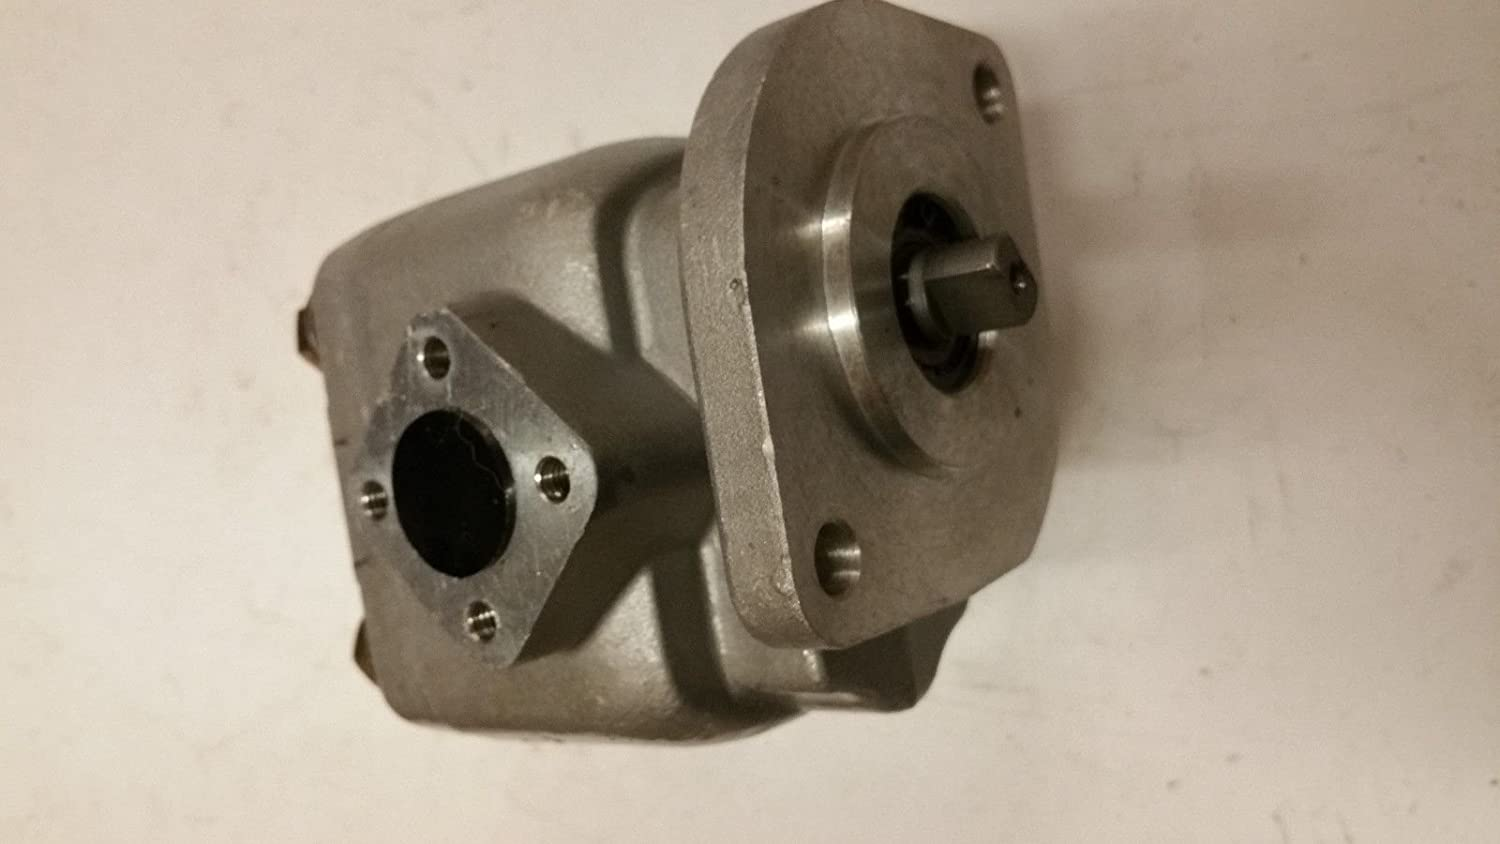 38180-36100 New Hydraulic Pump Made to fit Kubota Tractor Models ...